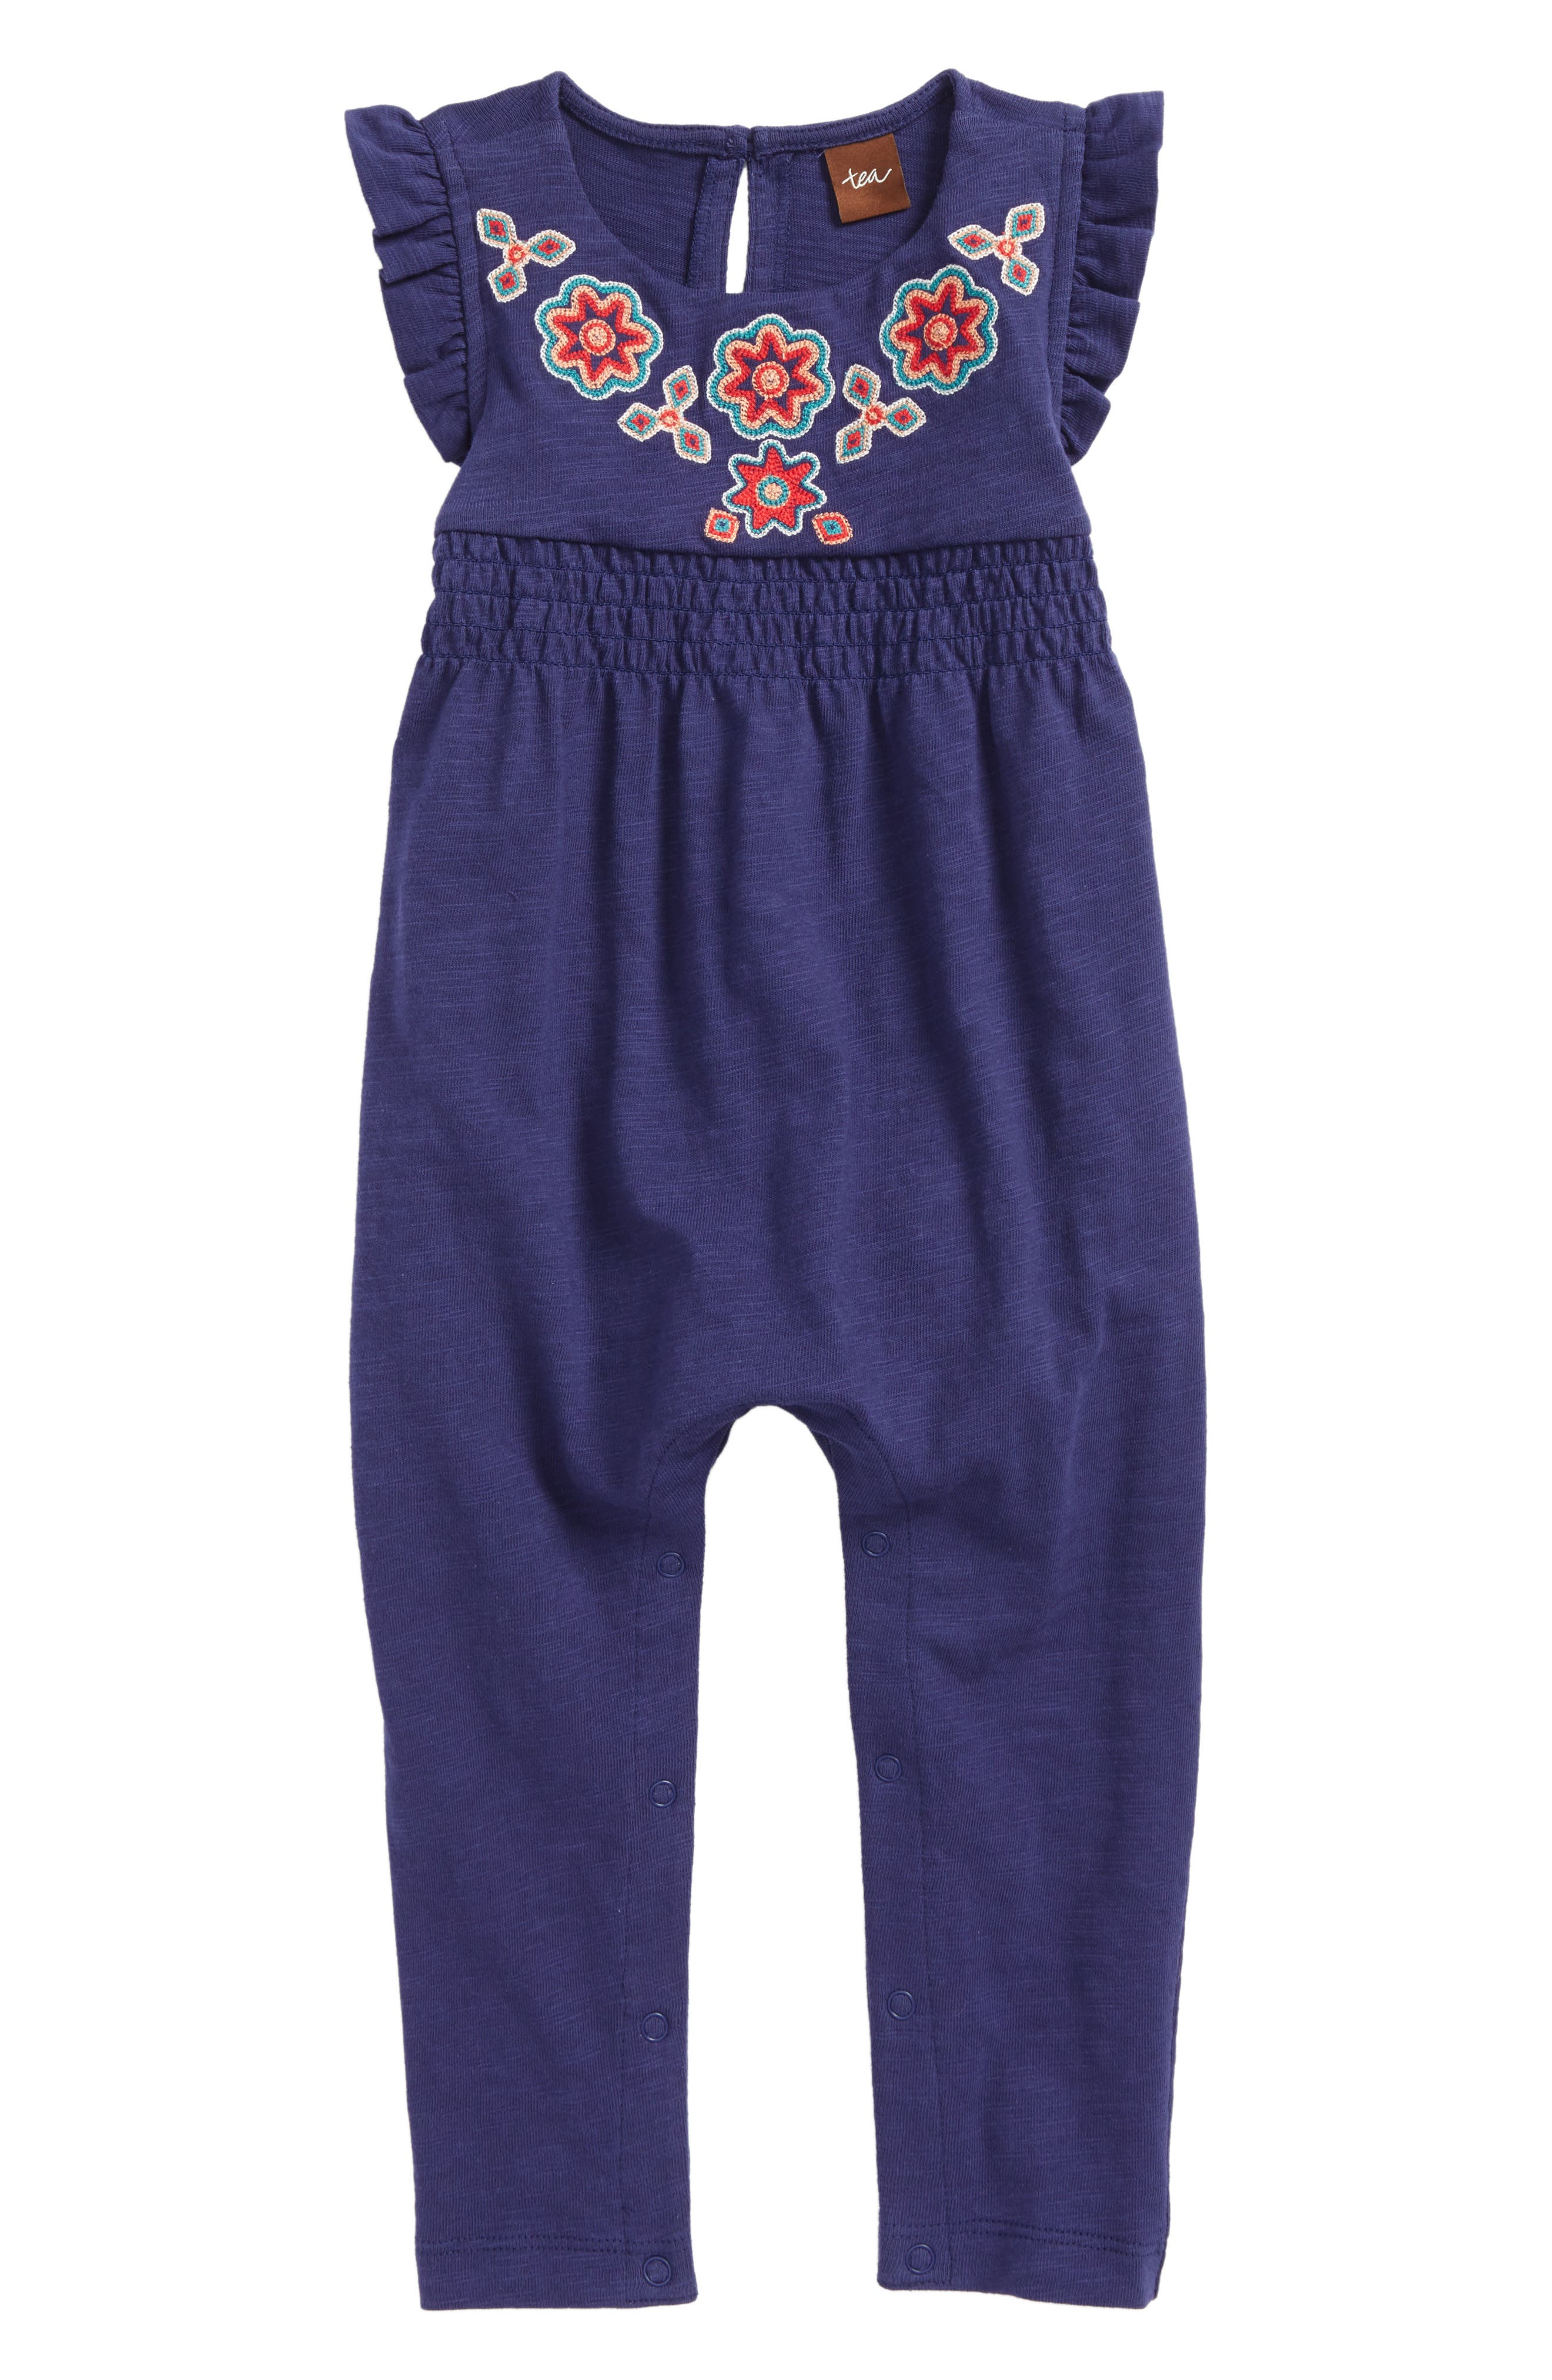 Tea Collection Embroidered Romper (Baby Girls)